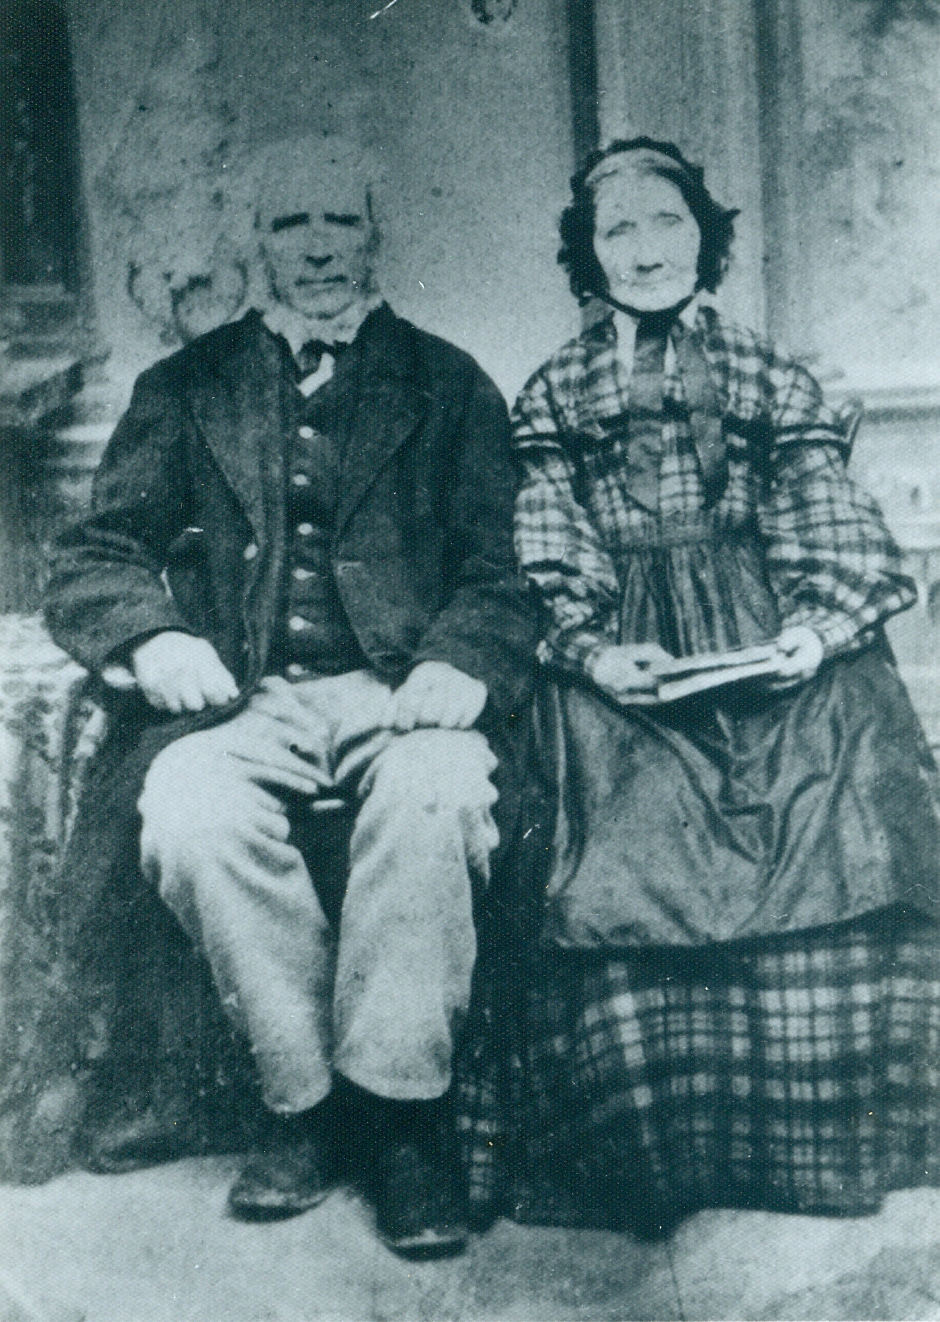 Edward Stanbury and Mary Jane Aunger Stanbury   In 1852, John emigrated to Canada and sought out his aunt and uncle, Edward Stanbury and Mary Jane Aunger, living in Seymour Township, whose daughter, Catherine, he later married